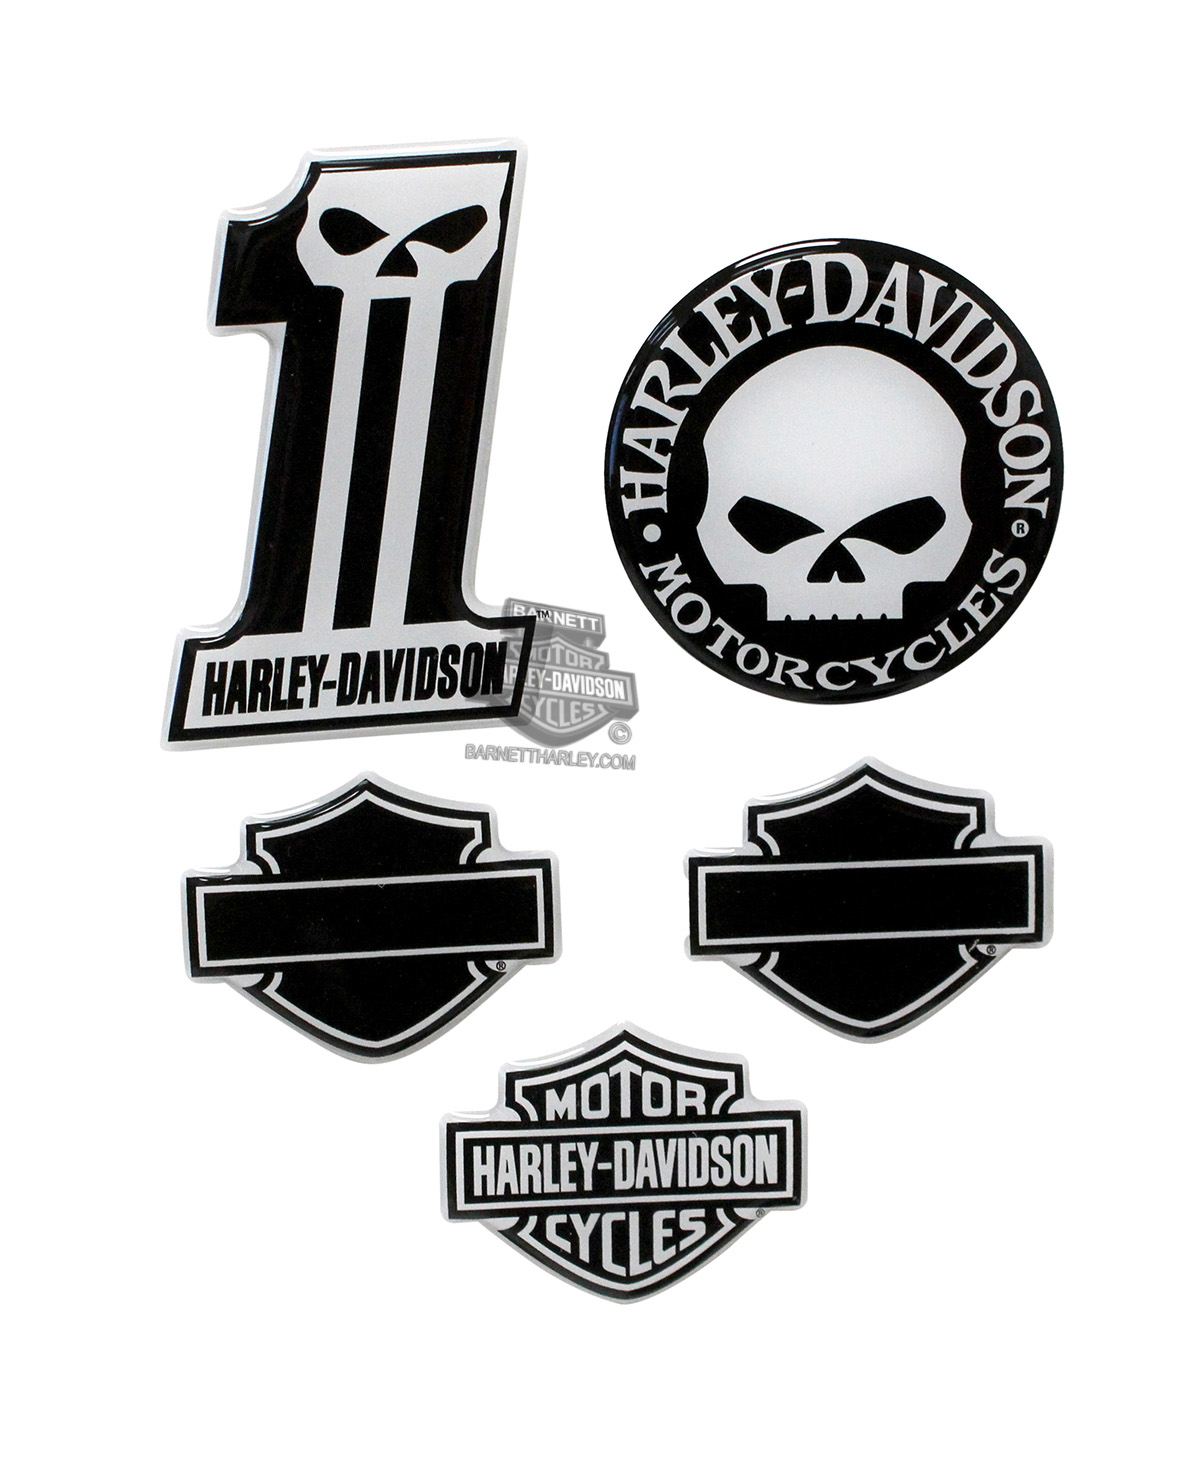 dc1246 - harley-davidson® midnight assortment dome decal sheet